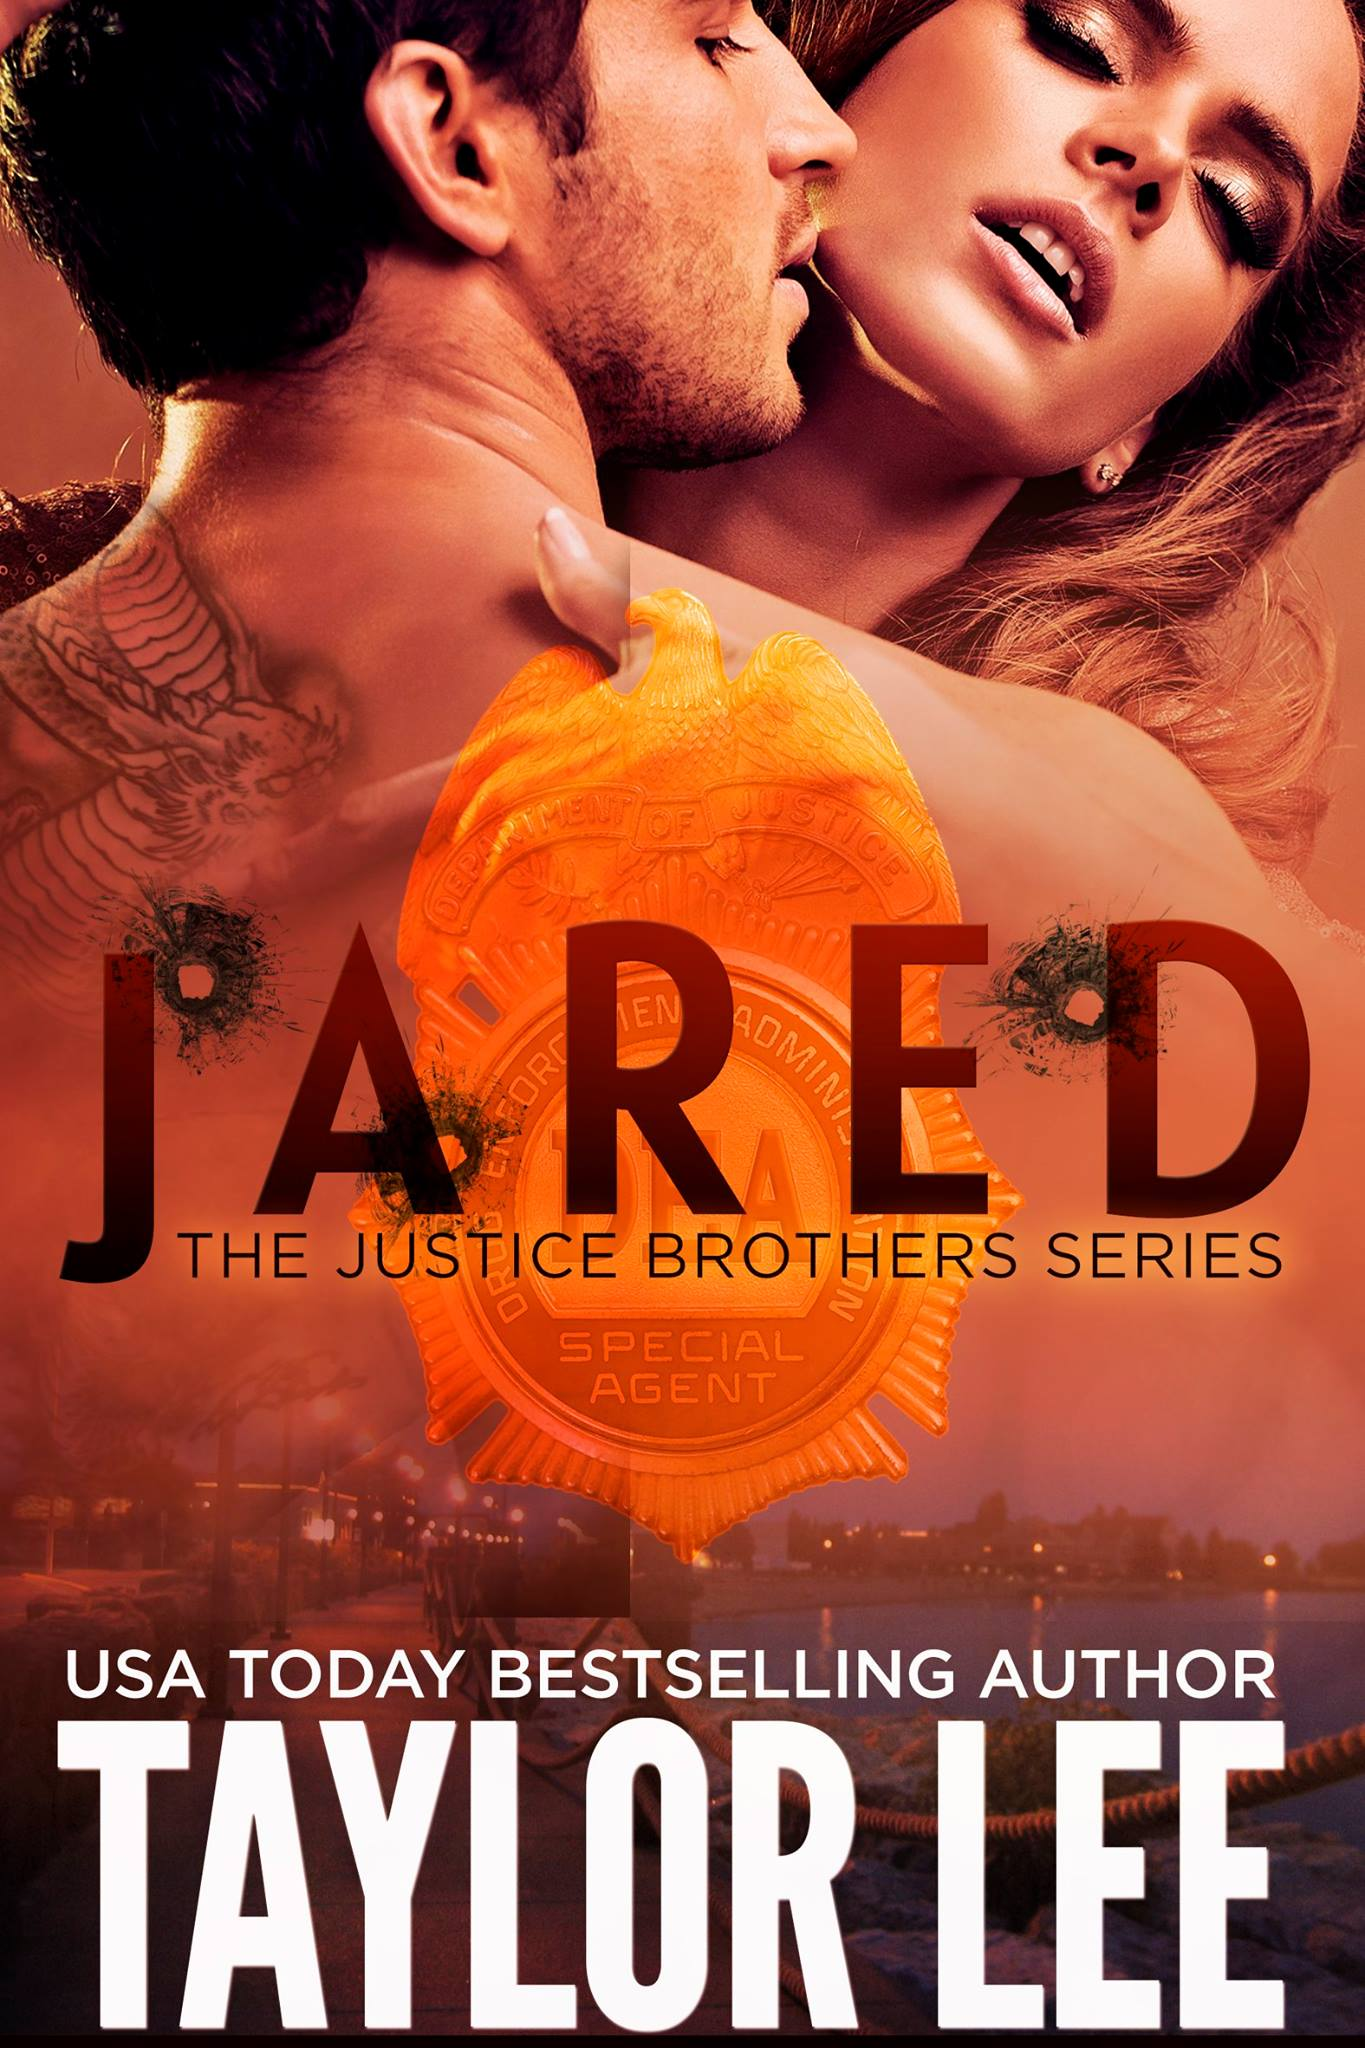 Jared - Summer Heat Box Set Book Cover